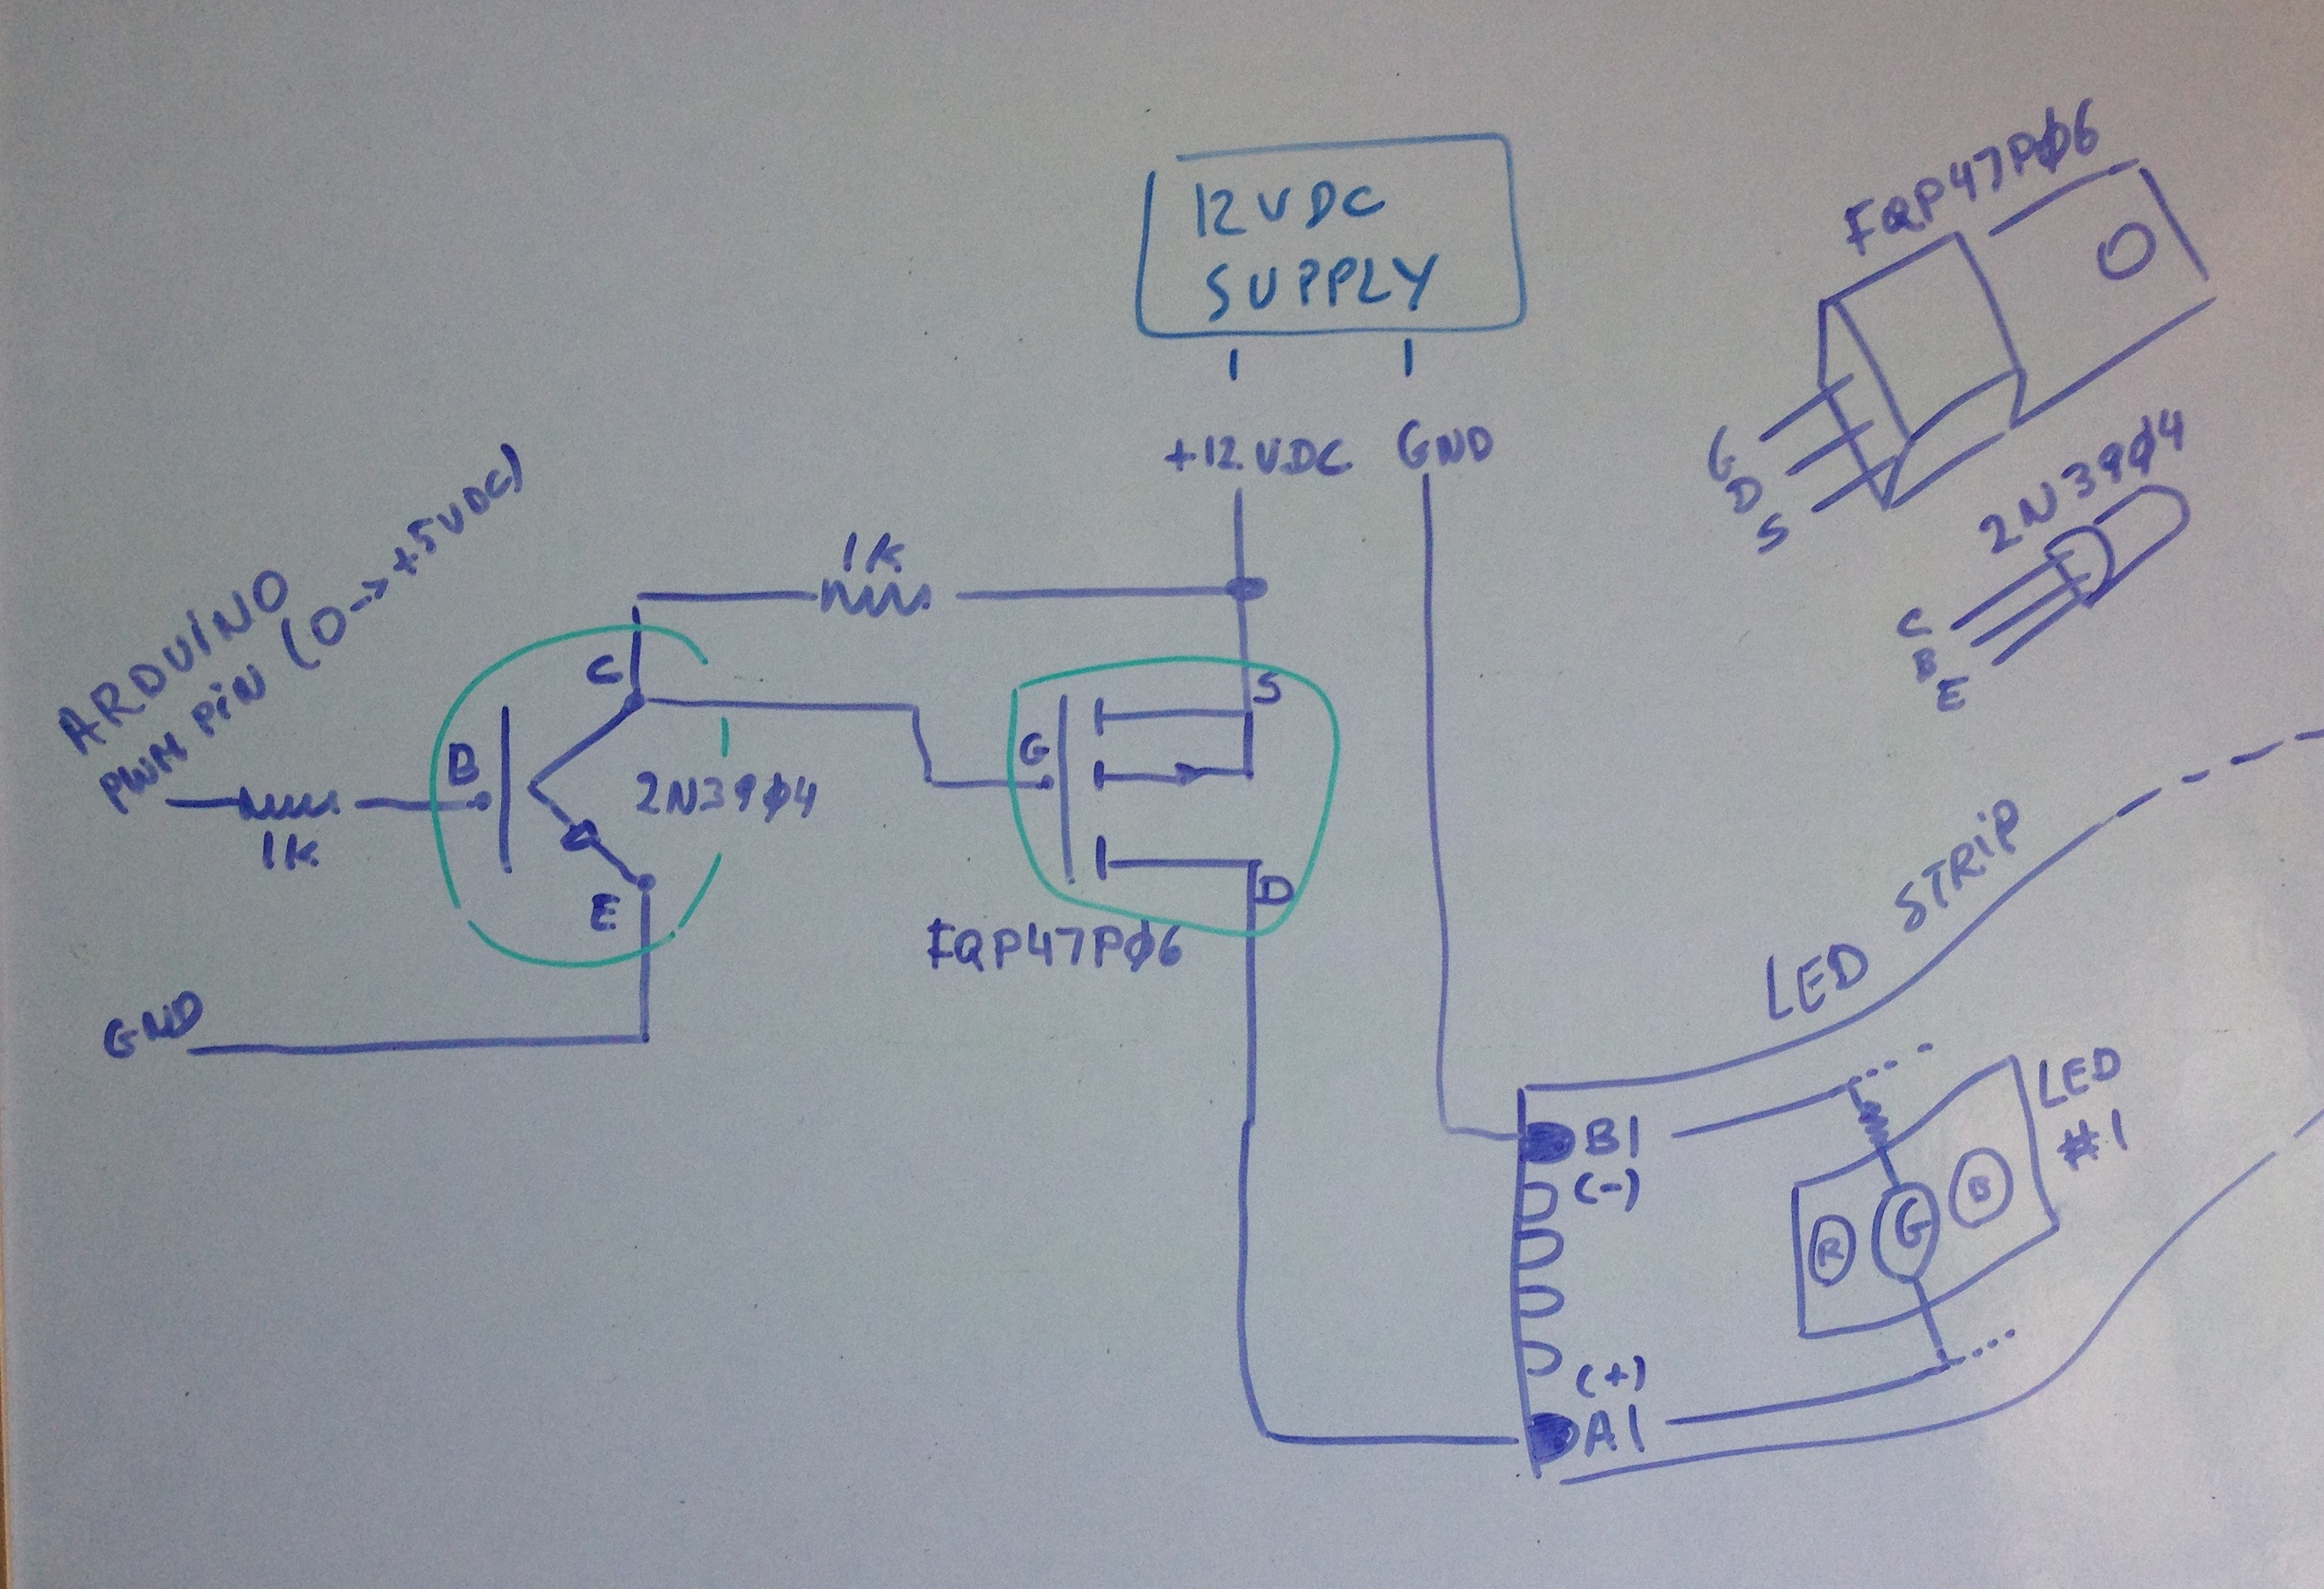 Led Light Strip Power Lifier Diagram Free Image About Wiring Diagram